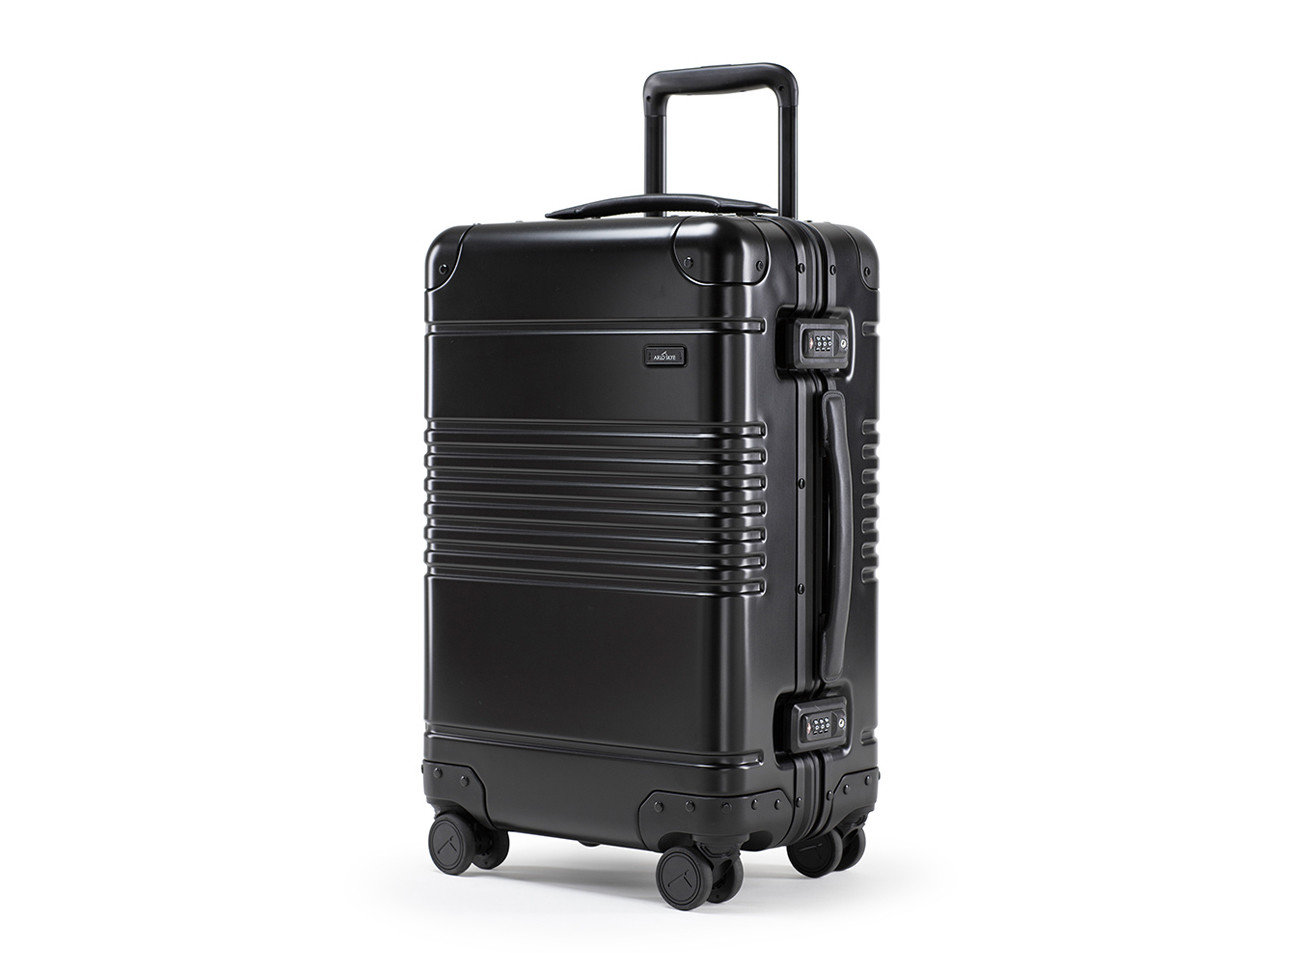 Style + Design suitcase product product design accessory case hand luggage luggage & bags